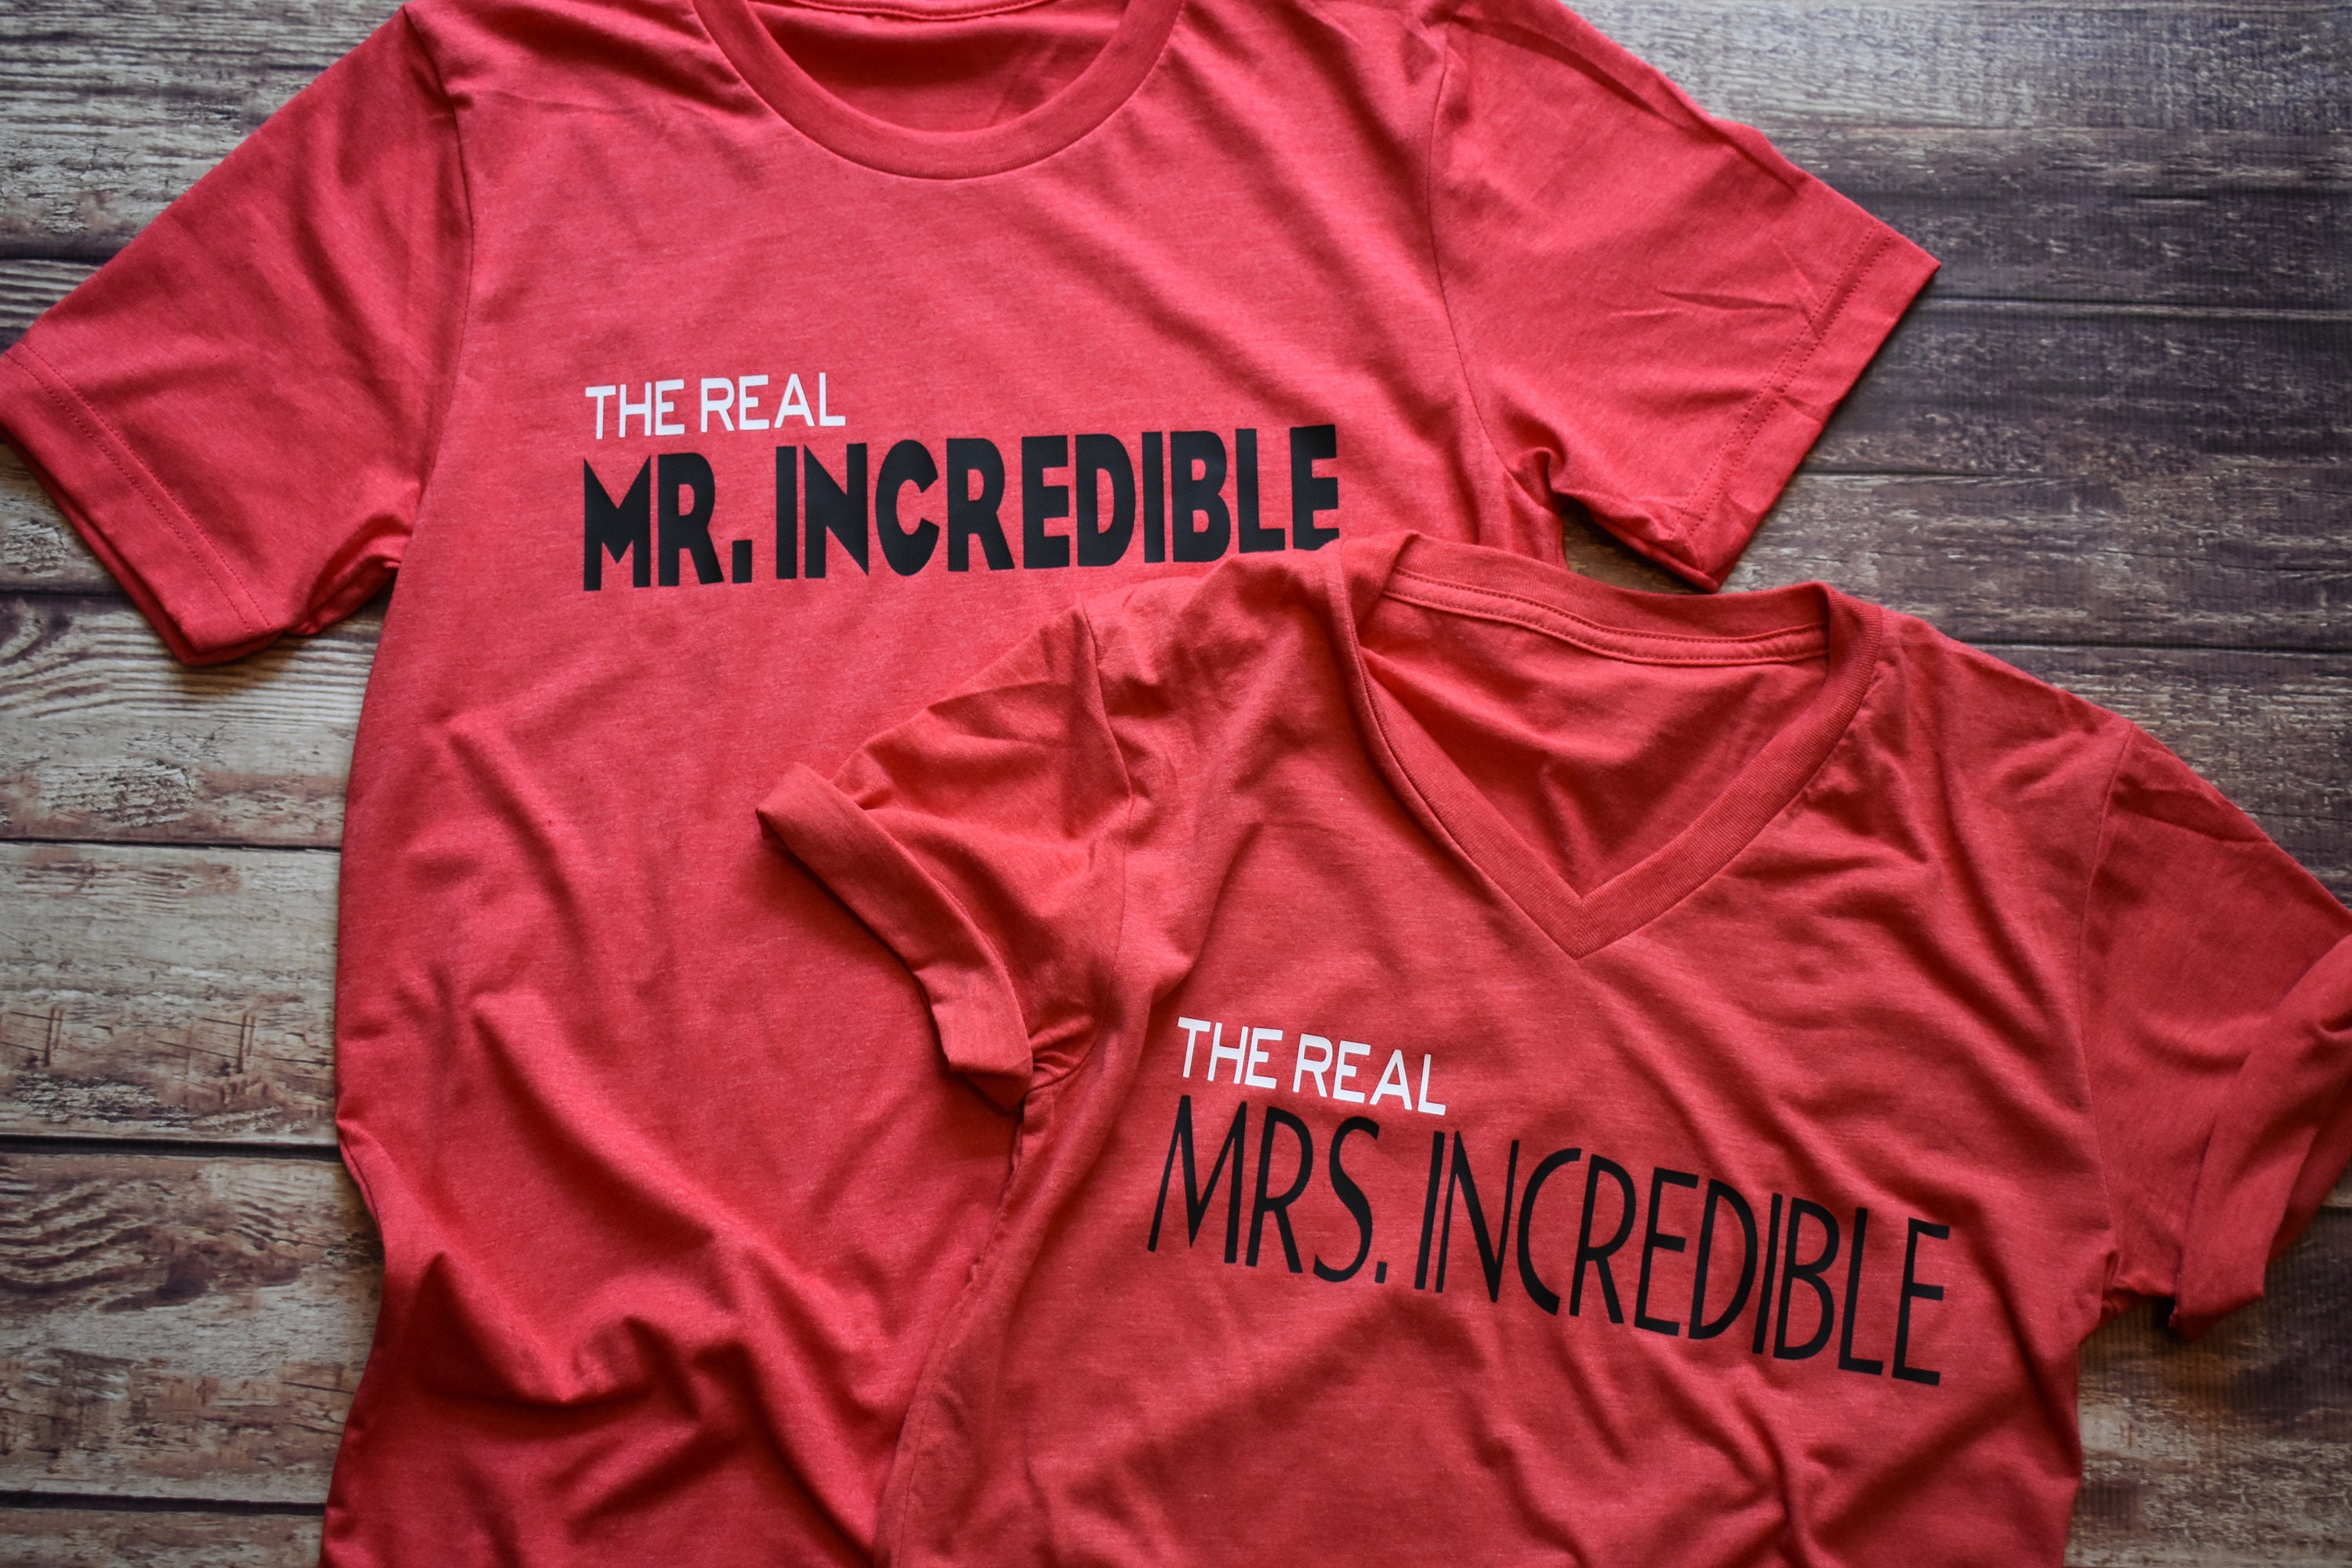 e0875f852 The Real Mr. and Mrs. Incredible Combo / Disney Shirt / Disney Couples Shirt  / The Incredibles / Mr Incredible /Pixar /Disney Mom/Disney Dad